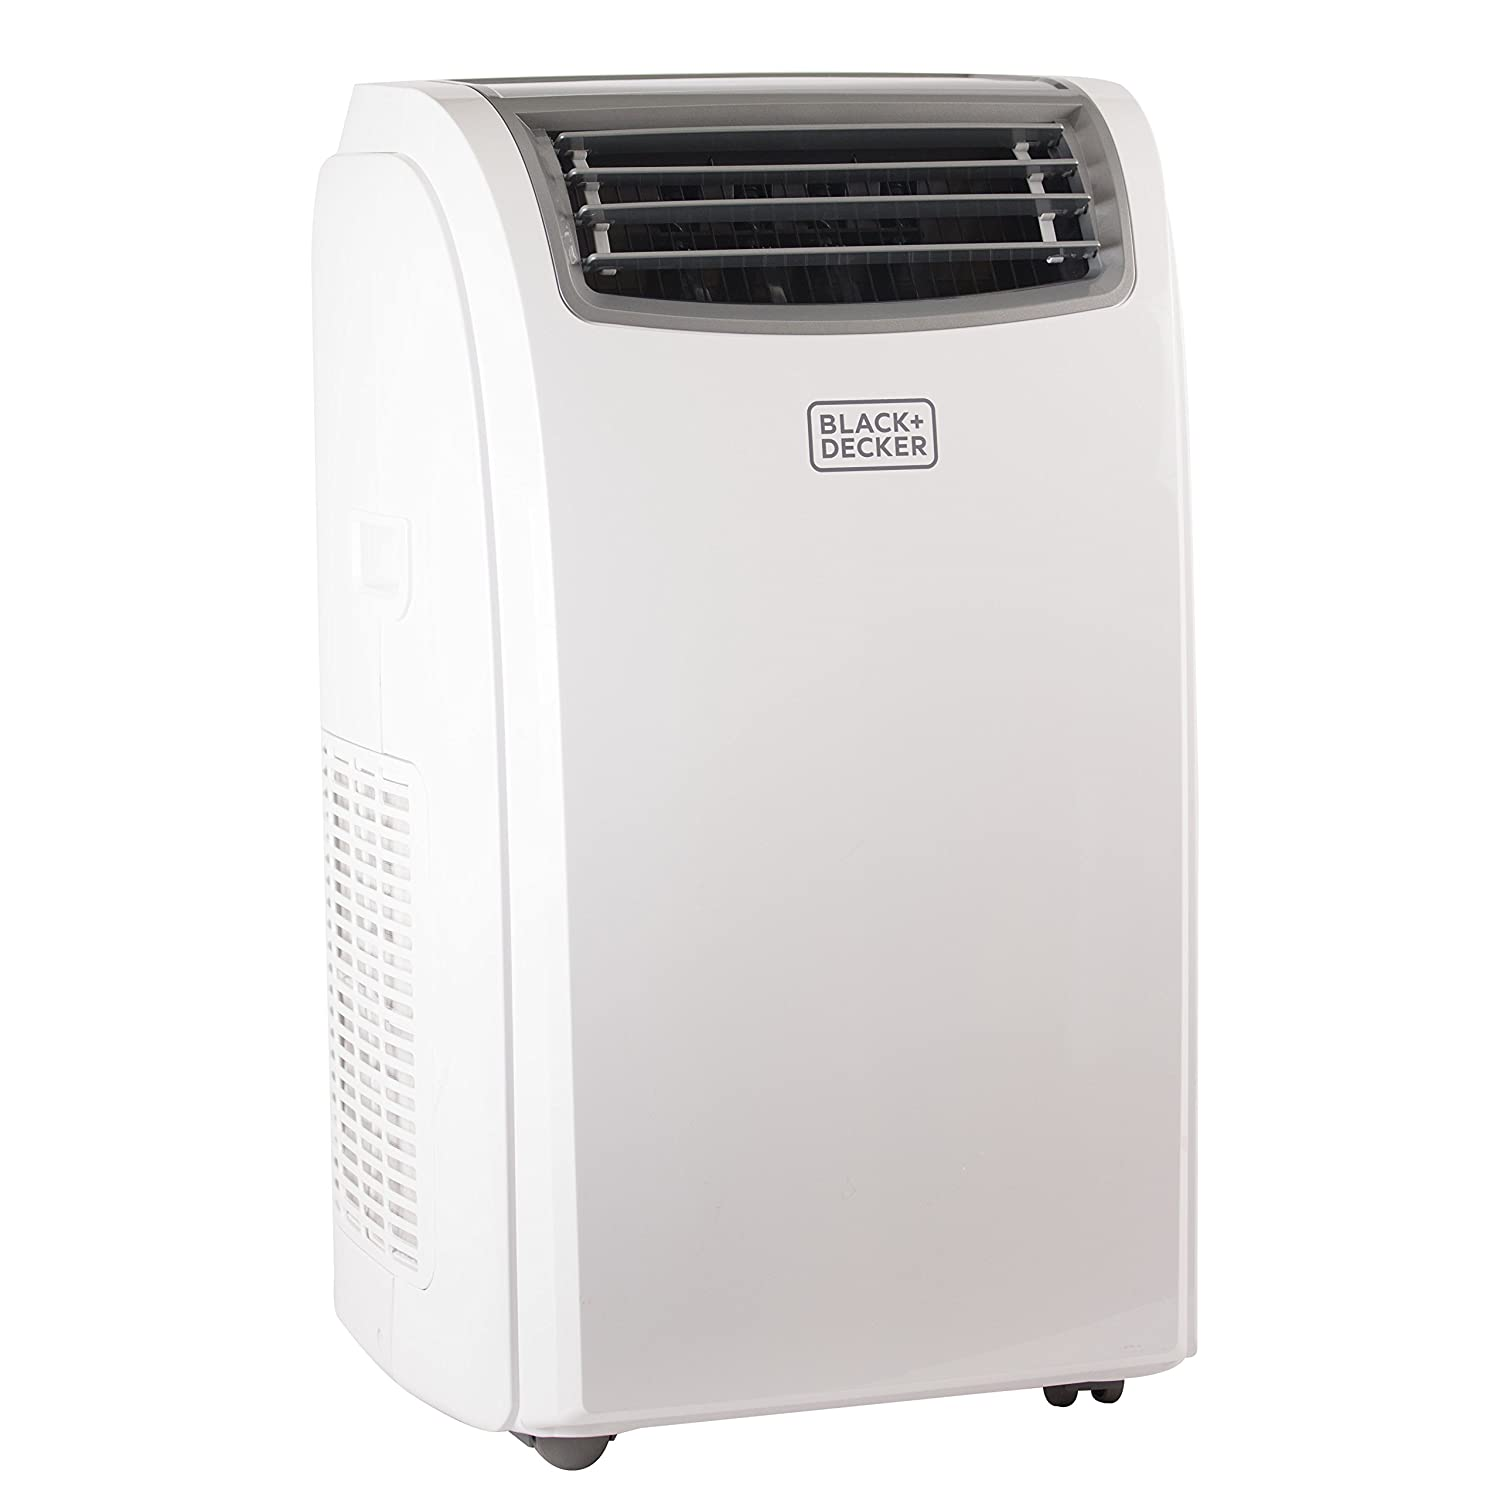 BLACK + DECKER BPACT12WT Portable Air Conditioner 12,000 BTU White